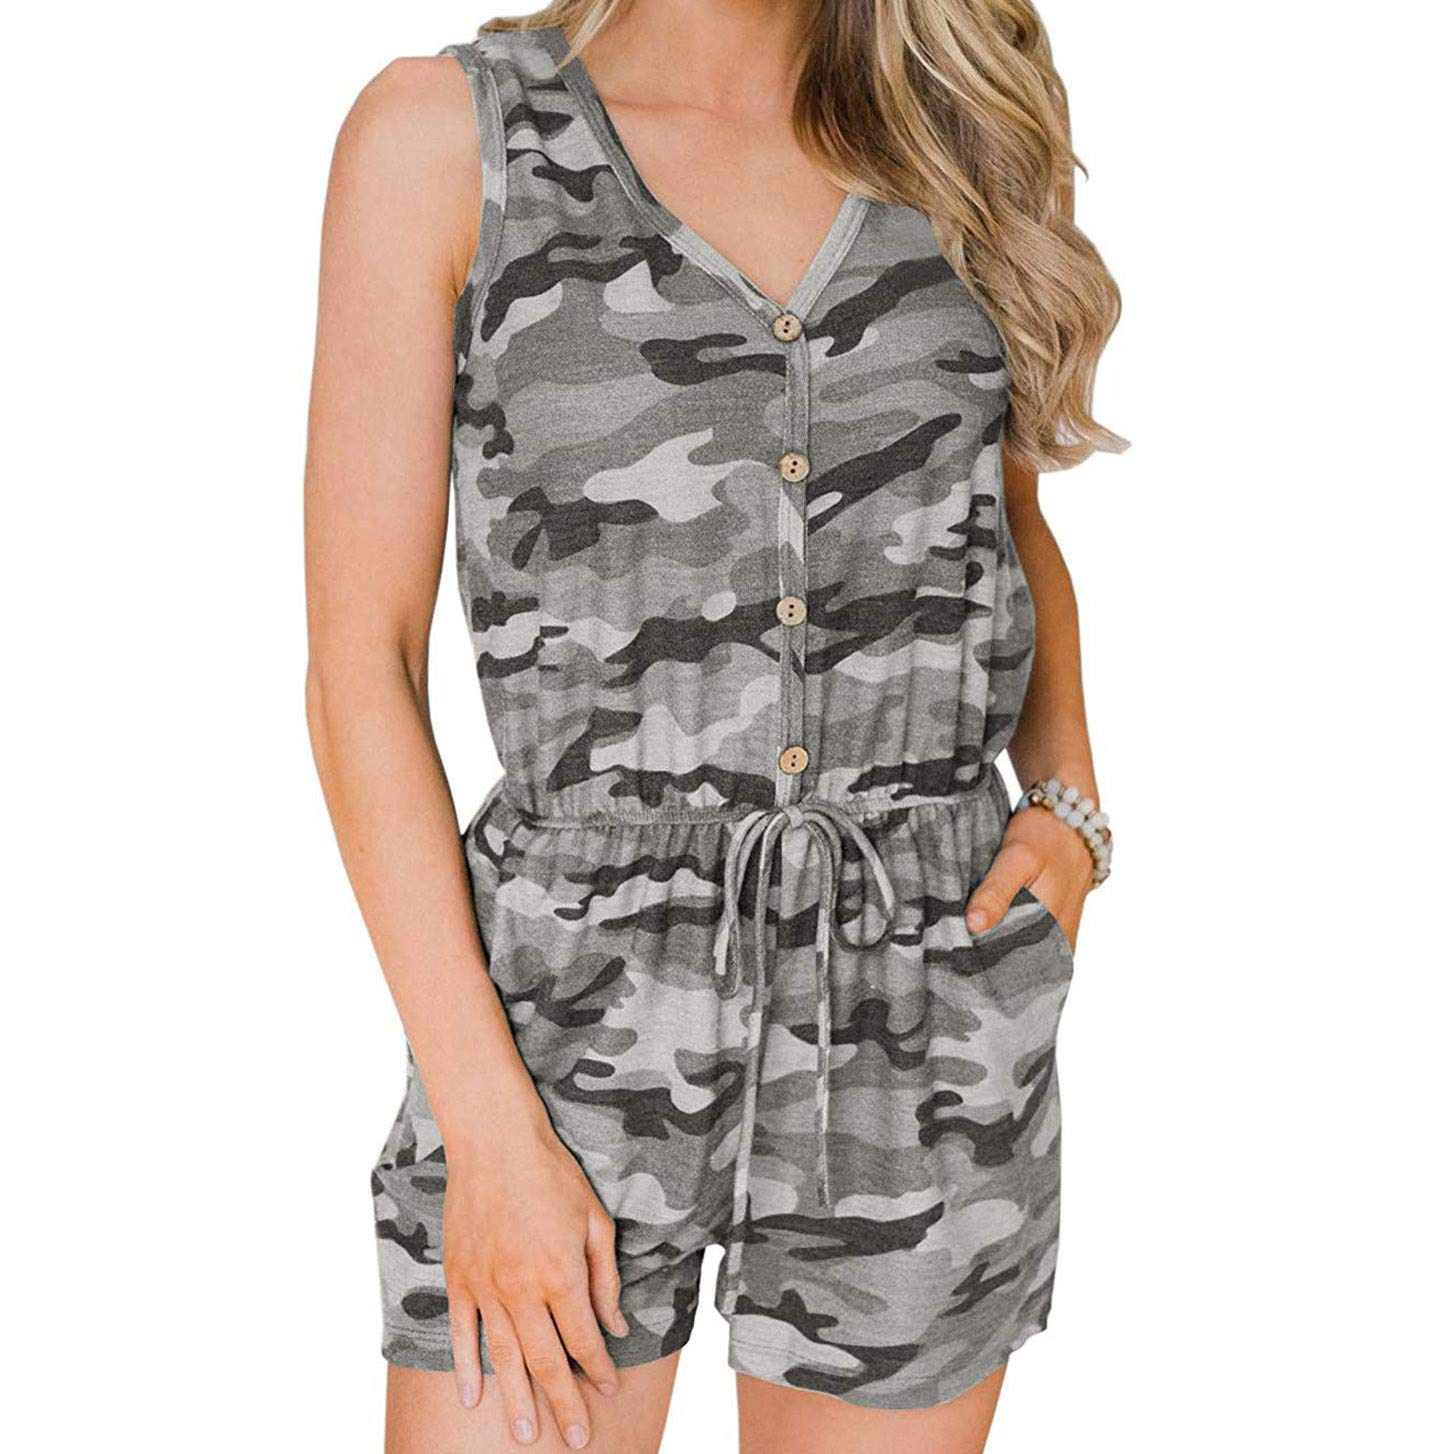 Womens Elegant Sleeveless Deep V-Neck Button Jumpsuits Rompers Belted Camouflage Print Wide Leg Shorts Lightweight Breathable Summer Lounge Beach Playsuit with Pockets